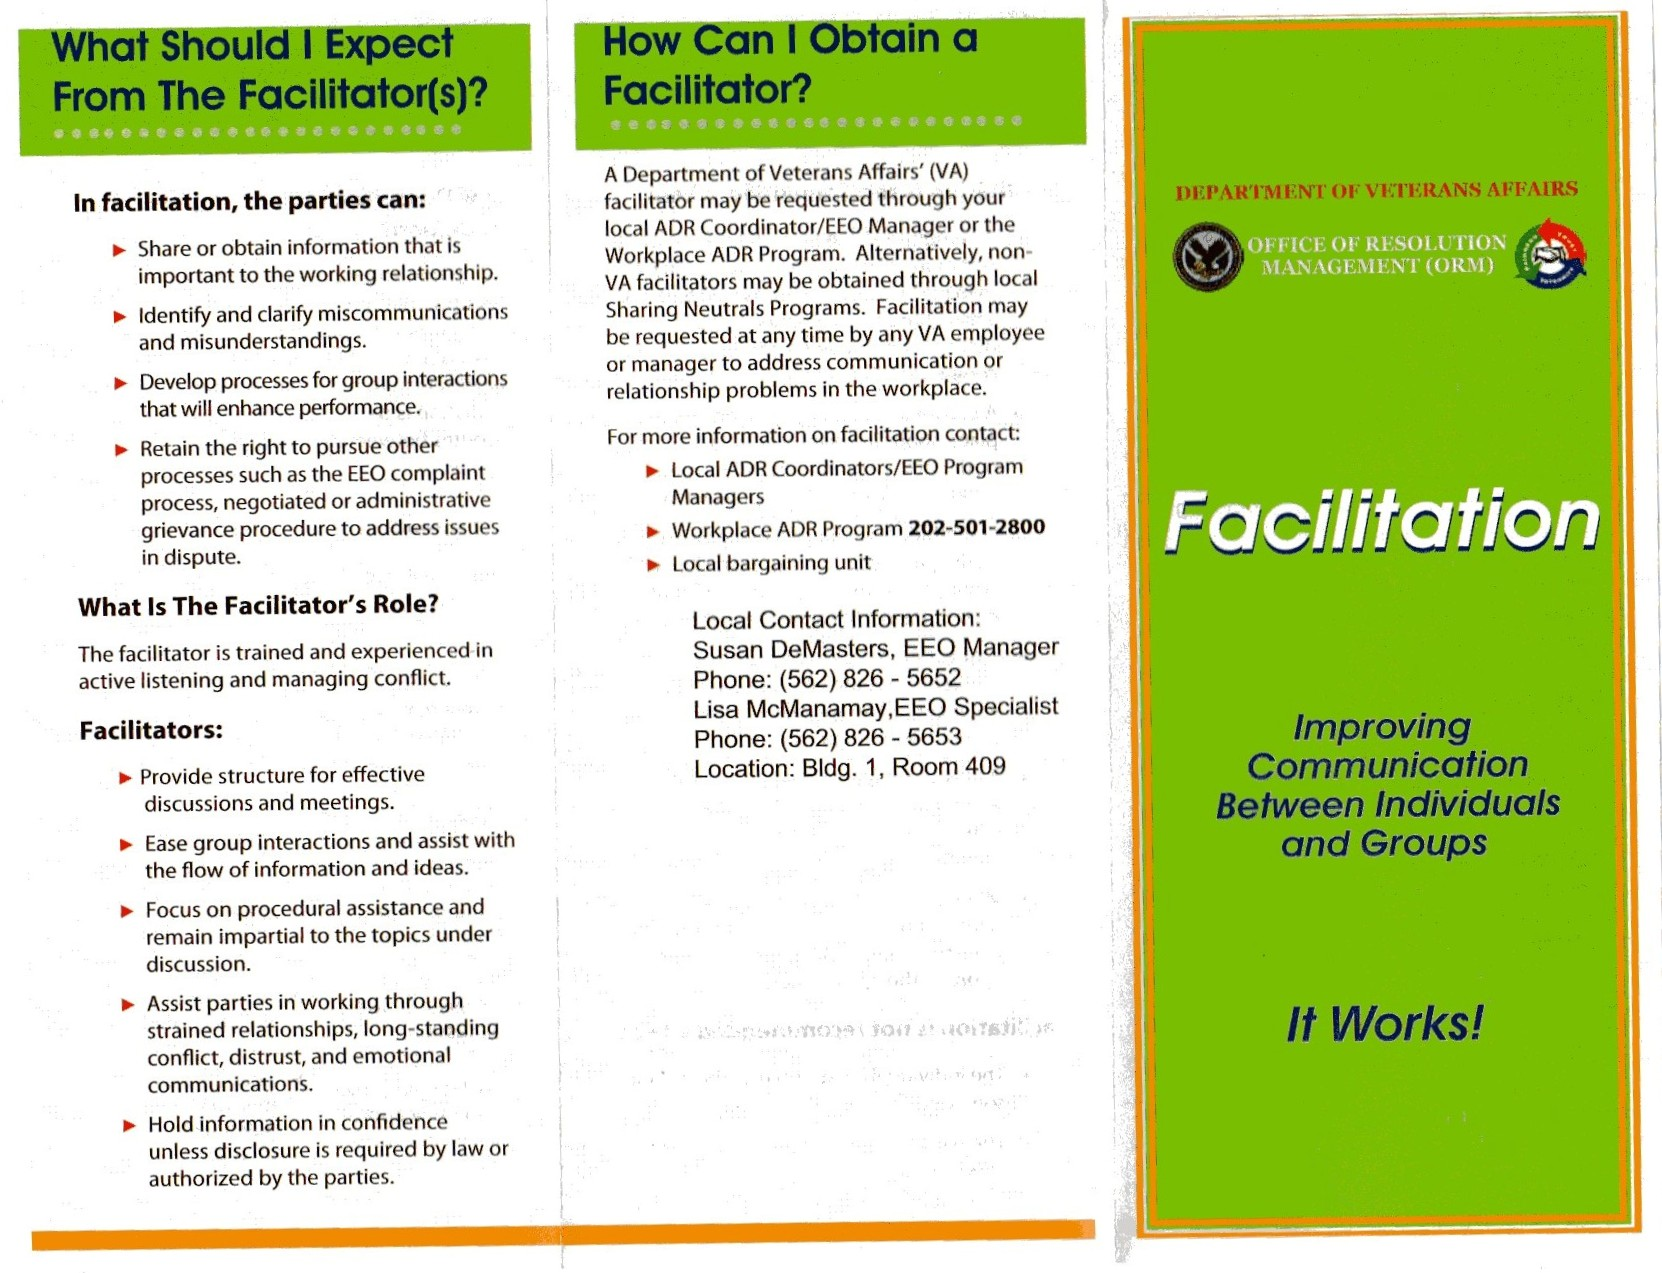 Brochure-Facilitation001.jpg